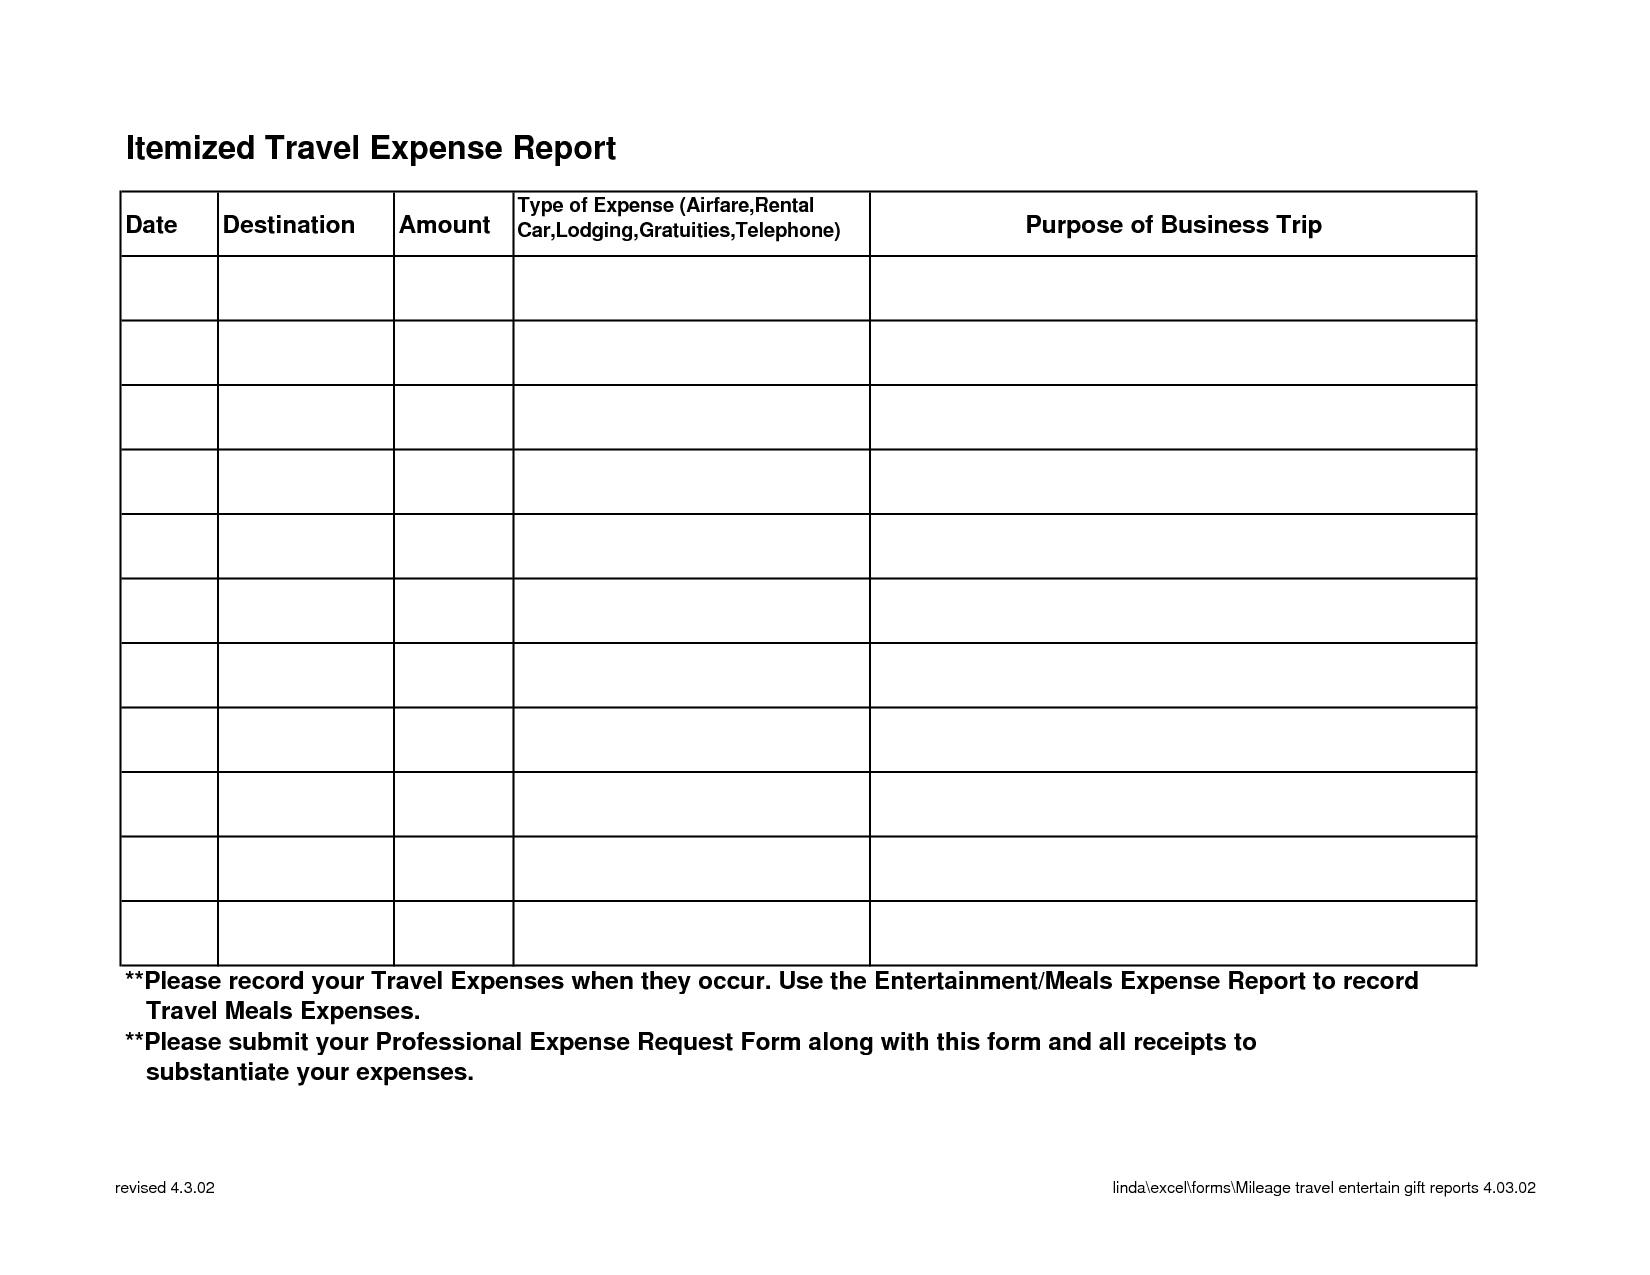 Employee Expense Report Template And Sample Expense Reports ... on business report, monthly payment report, monthly status report, monthly balance sheet, monthly claim report, monthly financial report, monthly safety report, monthly employee time sheet, monthly project report, monthly accounting report, monthly action report, monthly revenue report, monthly training report, monthly expenses spreadsheet, monthly performance report, monthly maintenance report, monthly invoice, monthly report sample, monthly calendar, monthly schedule,